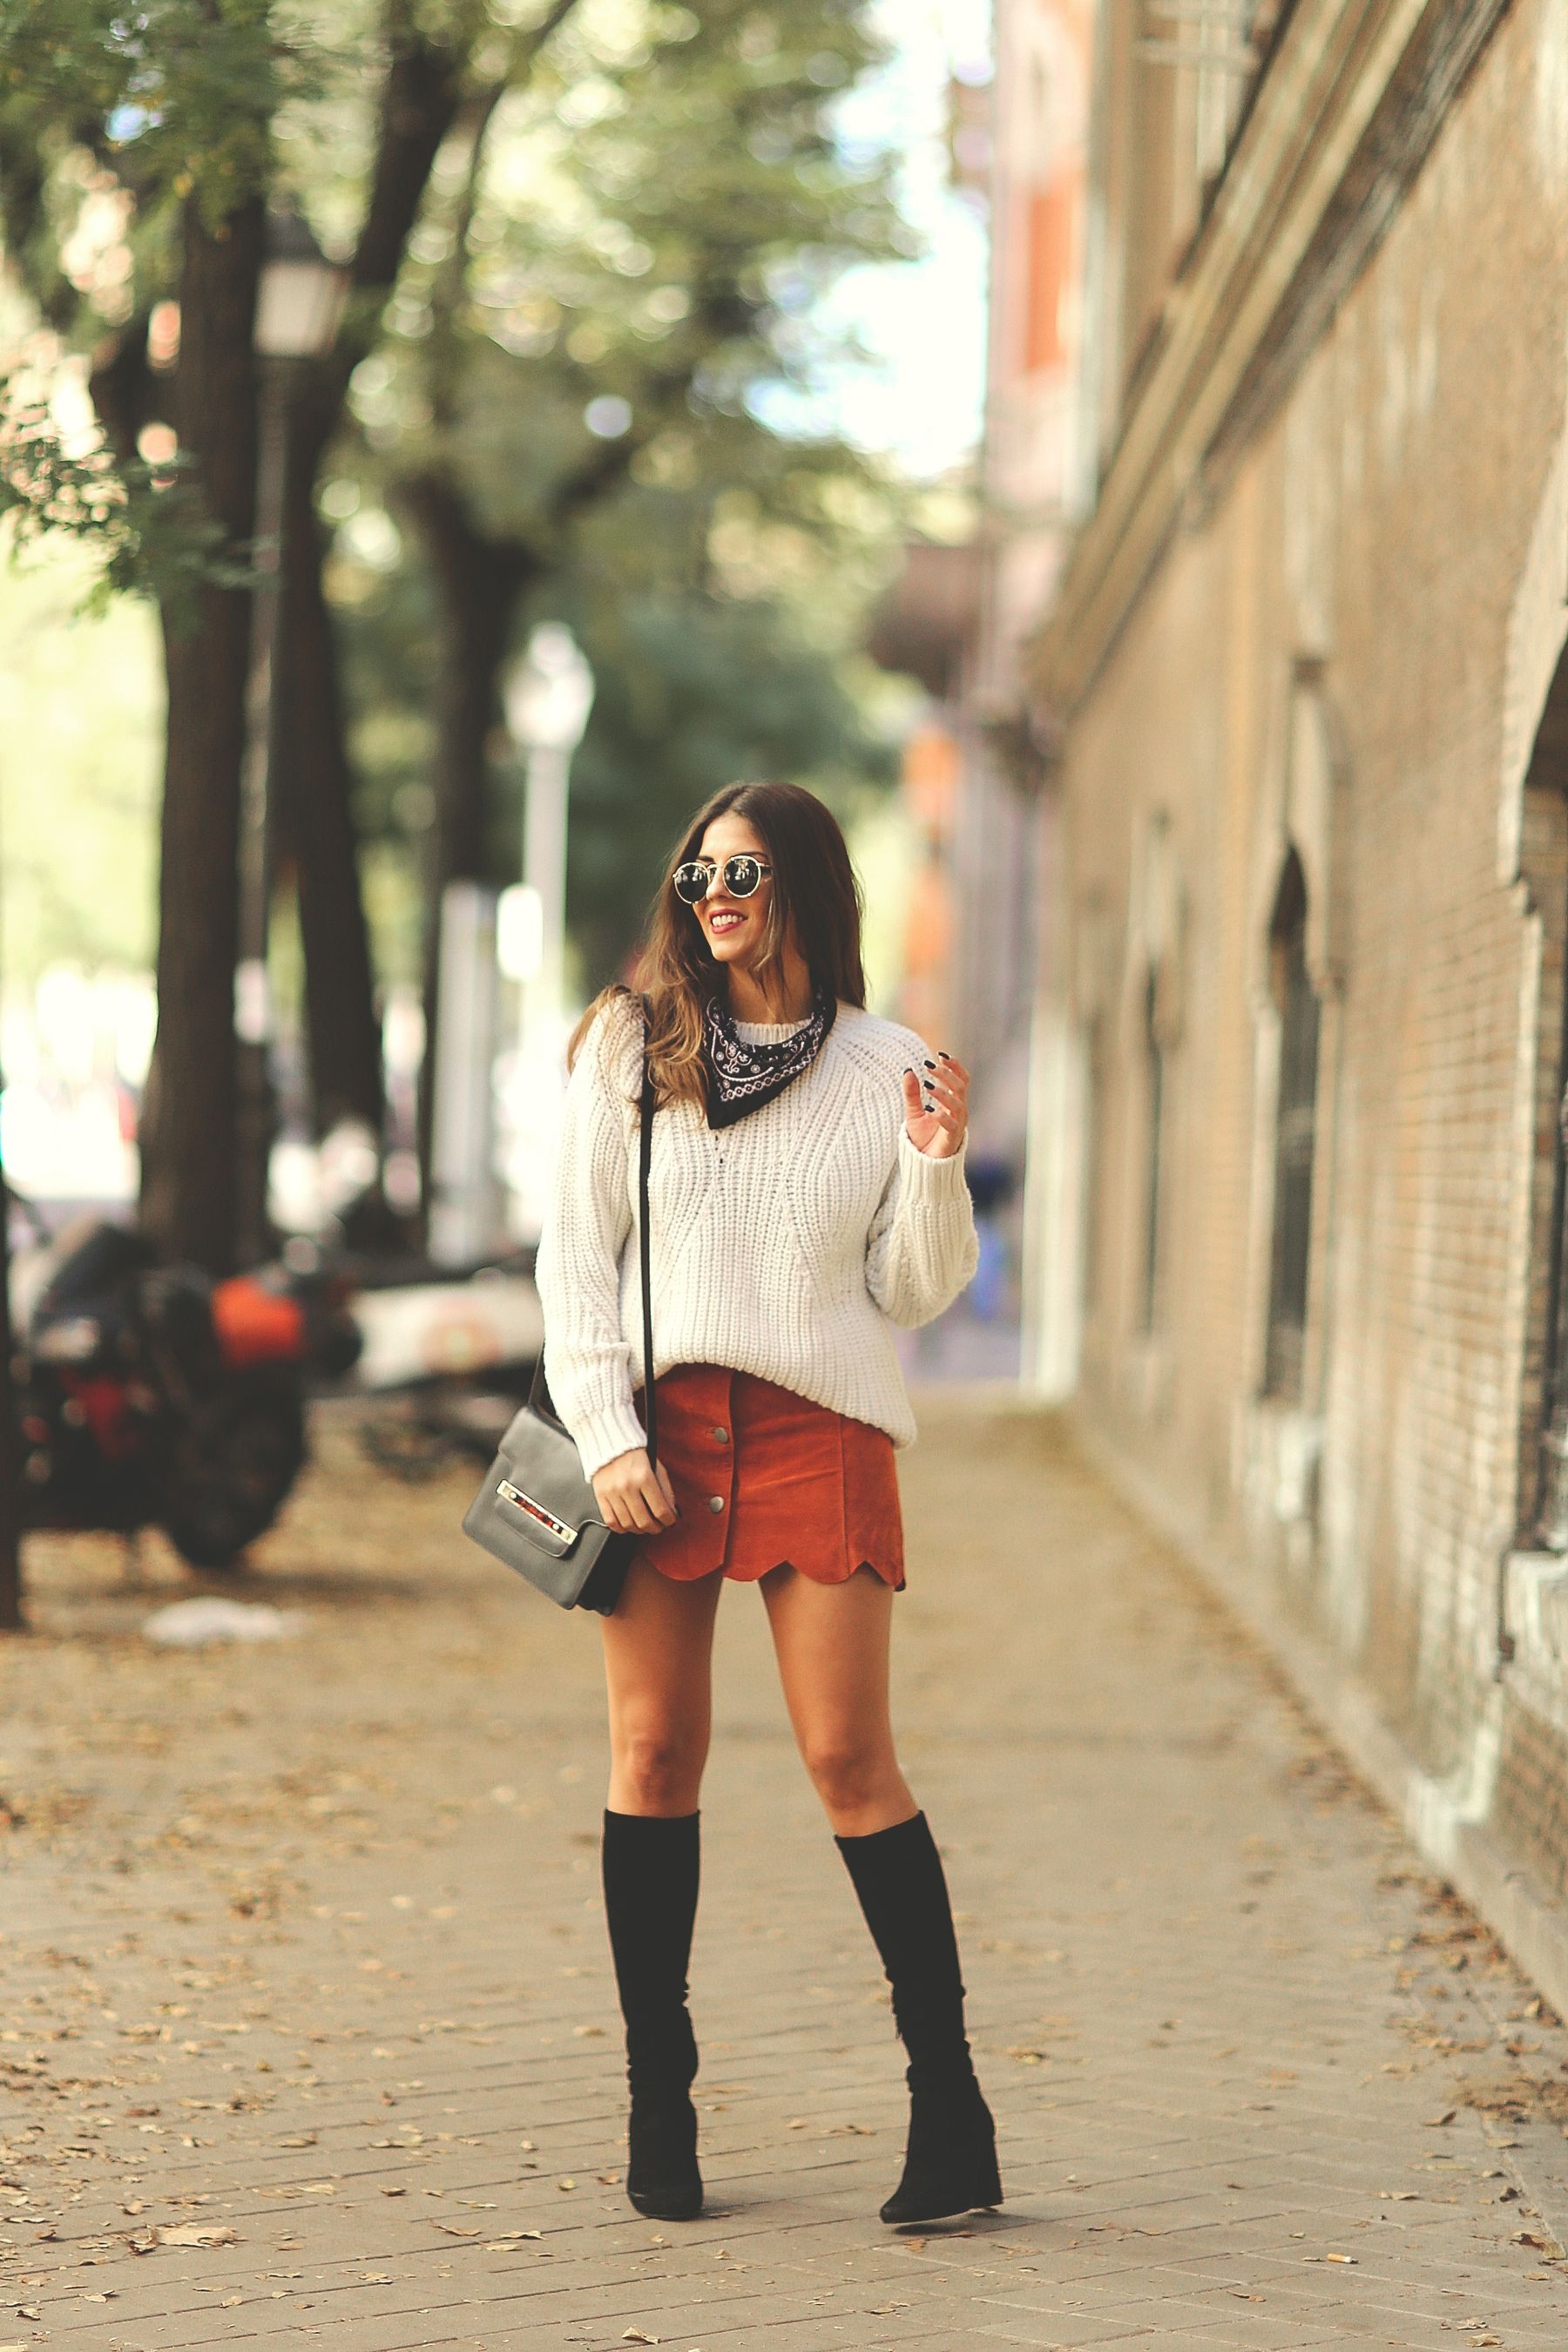 Natalia Cabezas shows us how the button front skirt should be worn; pairing this cute red skirt with a cream knit sweater and black boots. Sweater: Anine Bing, Skirt: Asos, Boots: Uterqüe, Bandana: Levi.